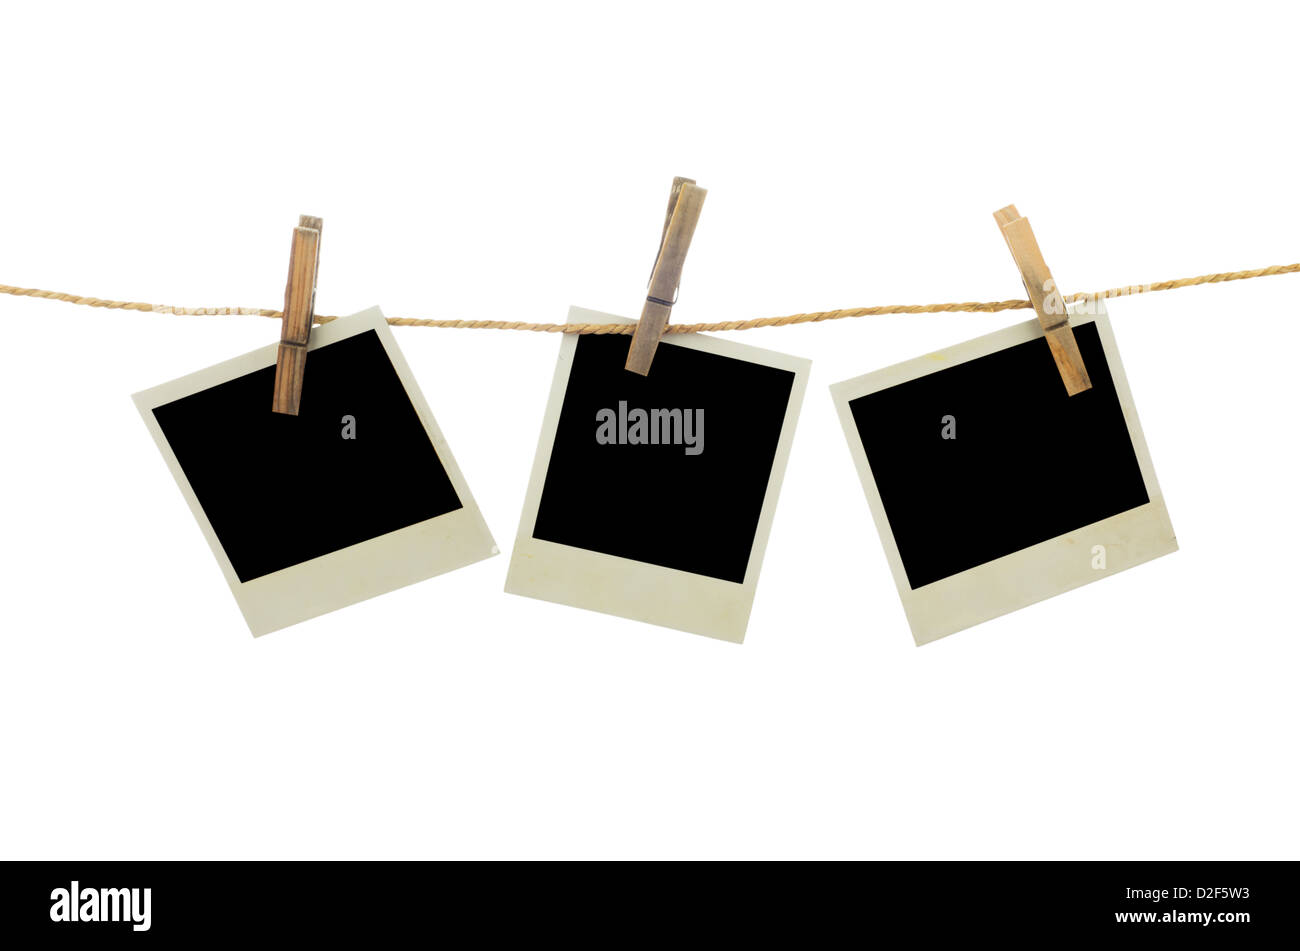 Three blank instant photos hanging on the clothesline. Isolated on white background. - Stock Image